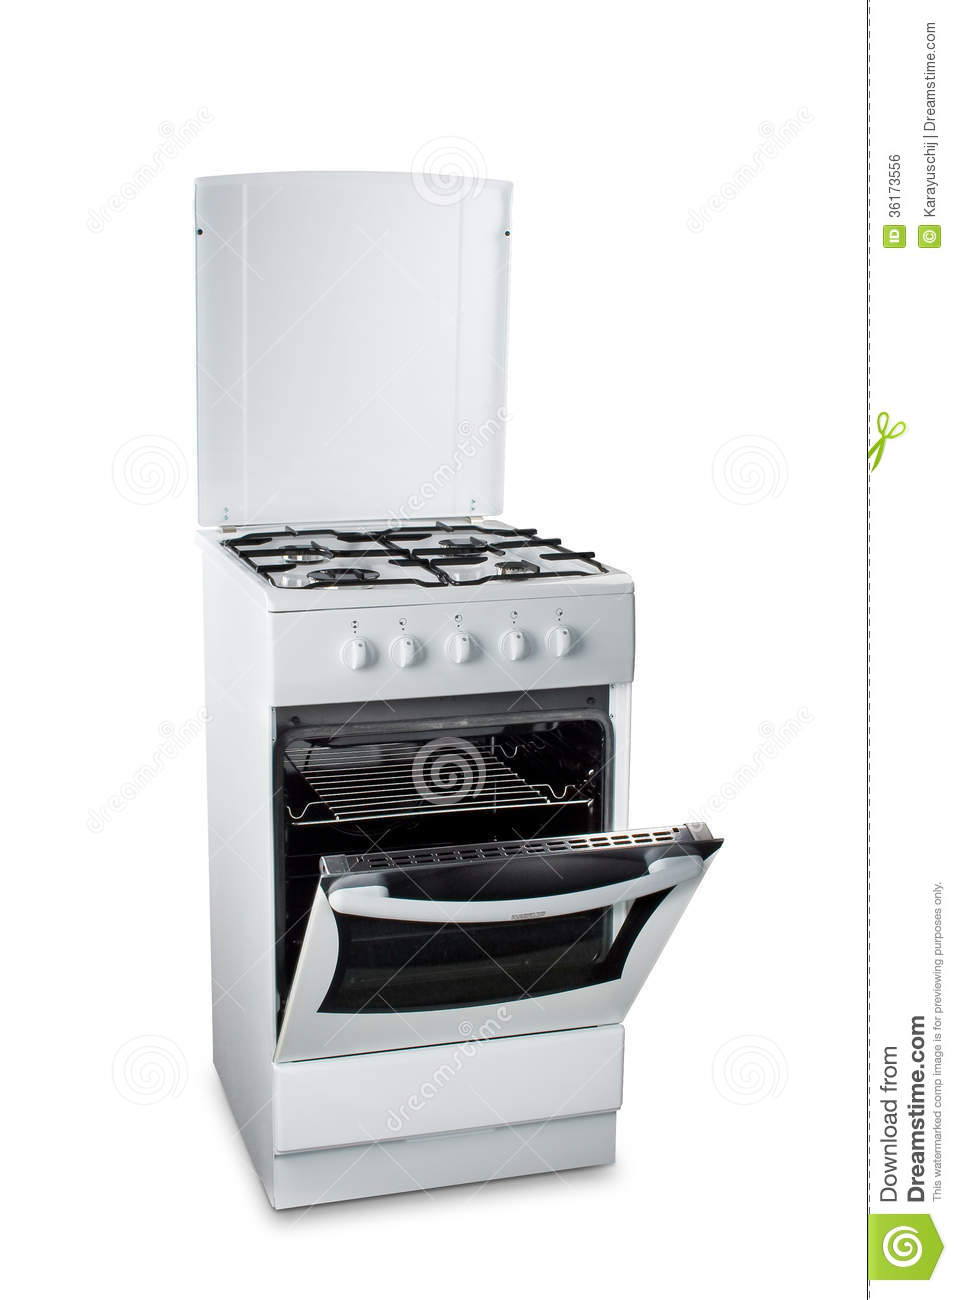 major kitchen appliances hotel suites with gas stove open oven royalty free stock image - ...